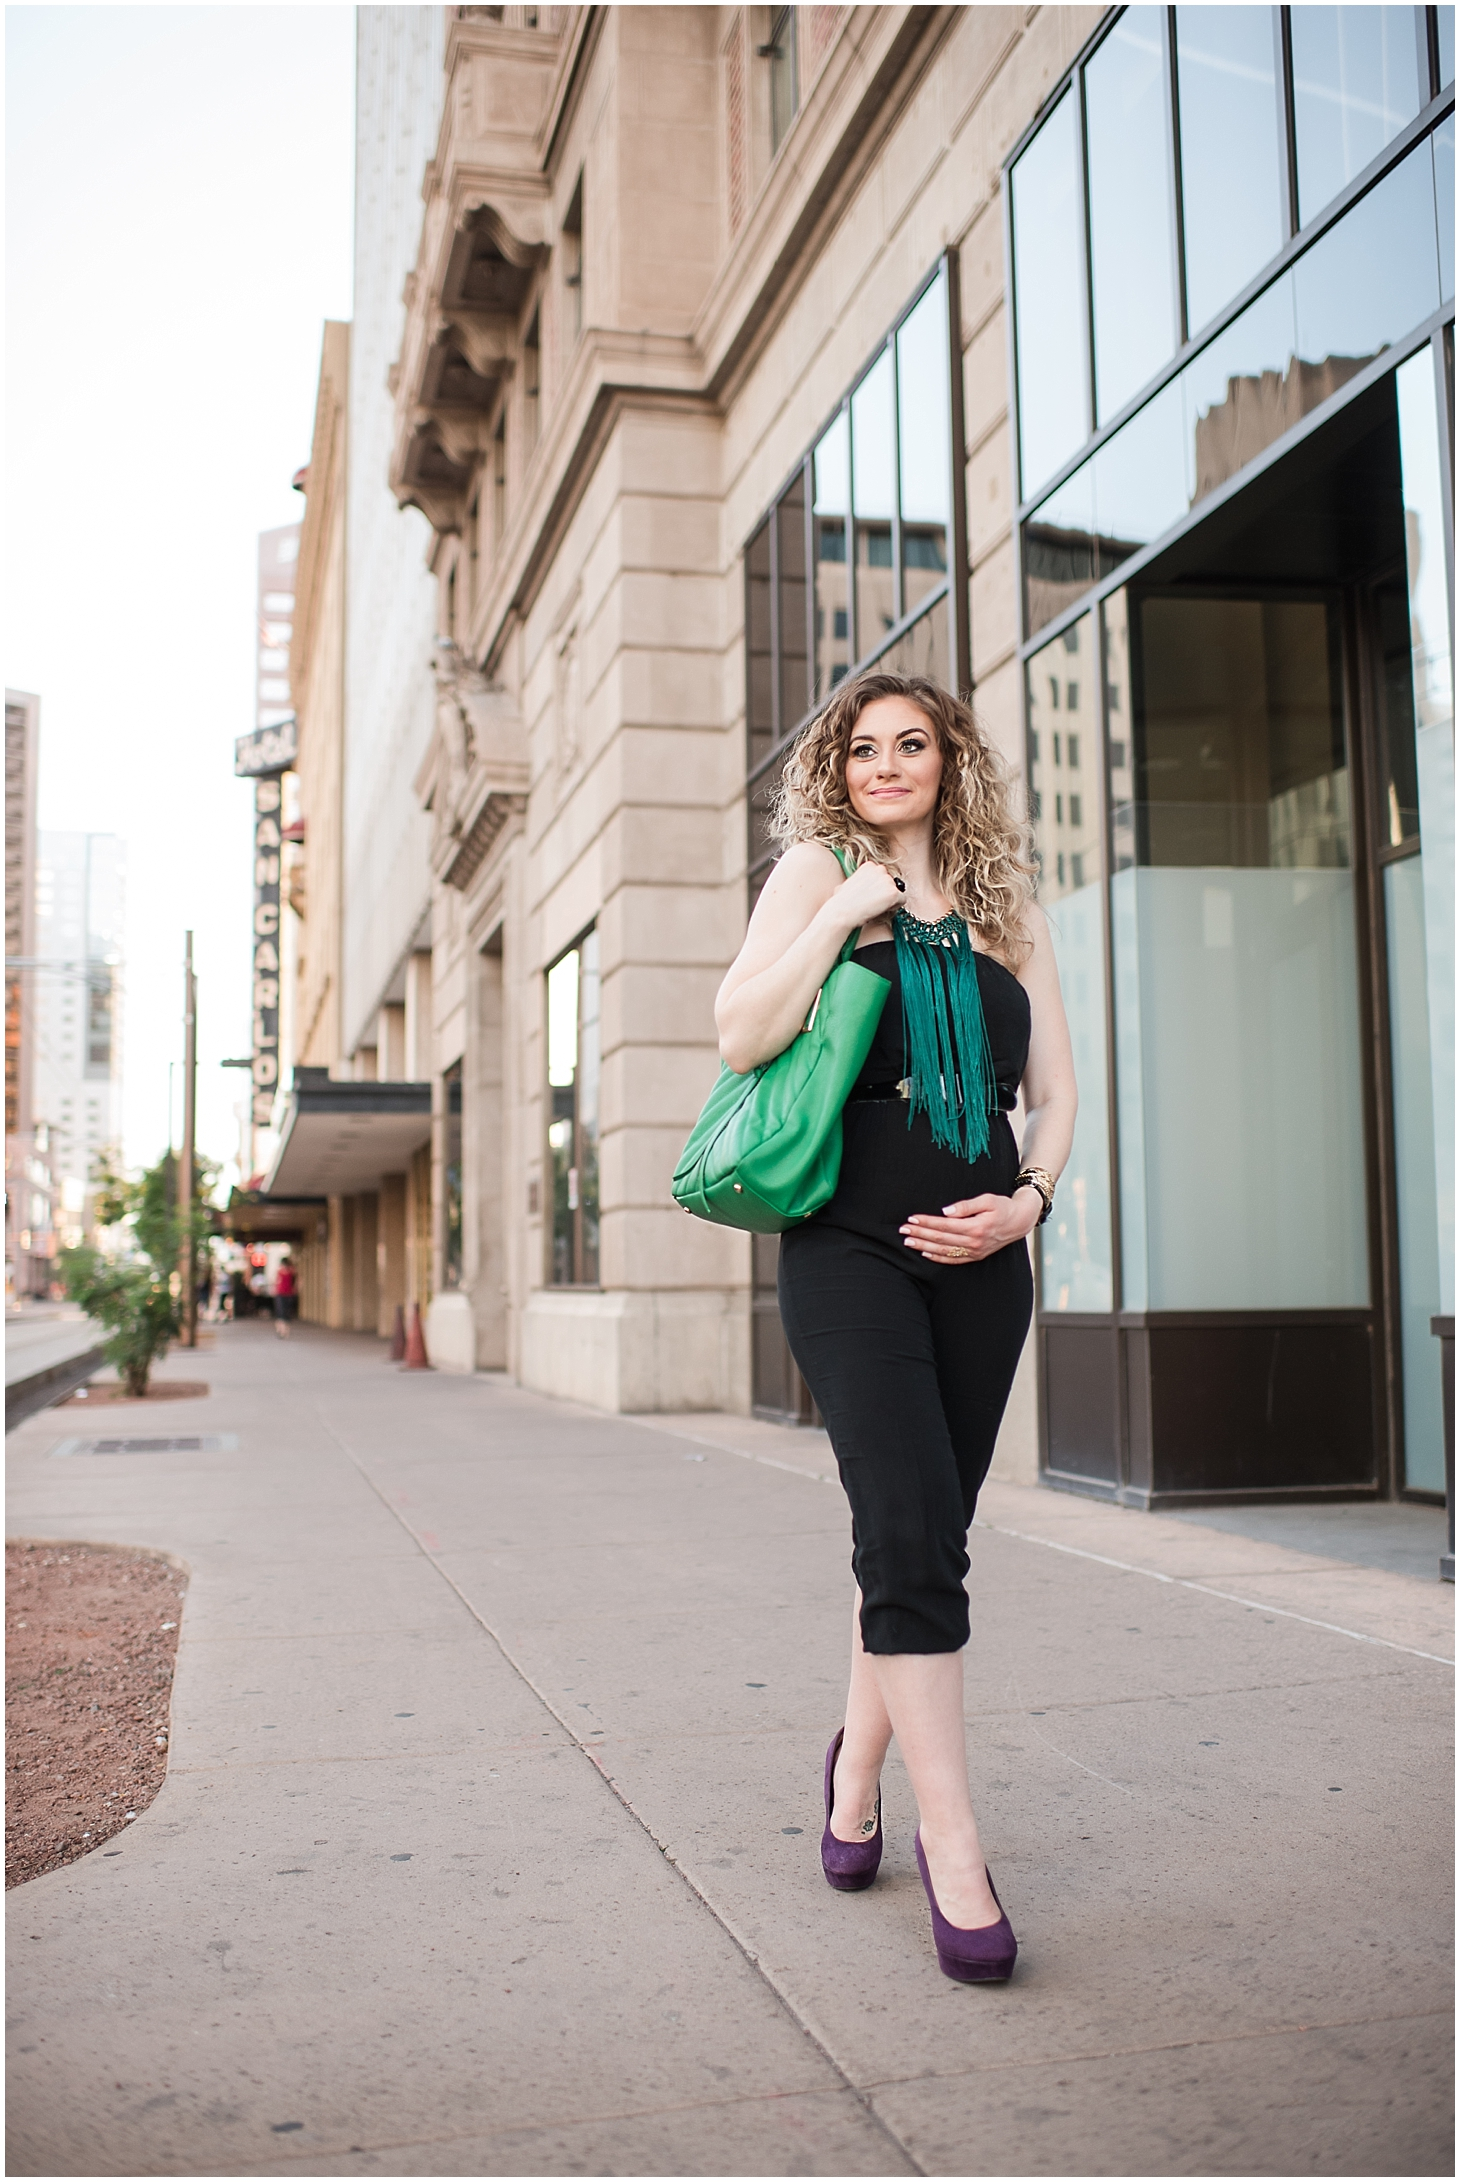 Maternity session with beautiful mommy-to-be Mary Schwickerath at downtown Phoenix. Photo taken by Jade Min Photography.